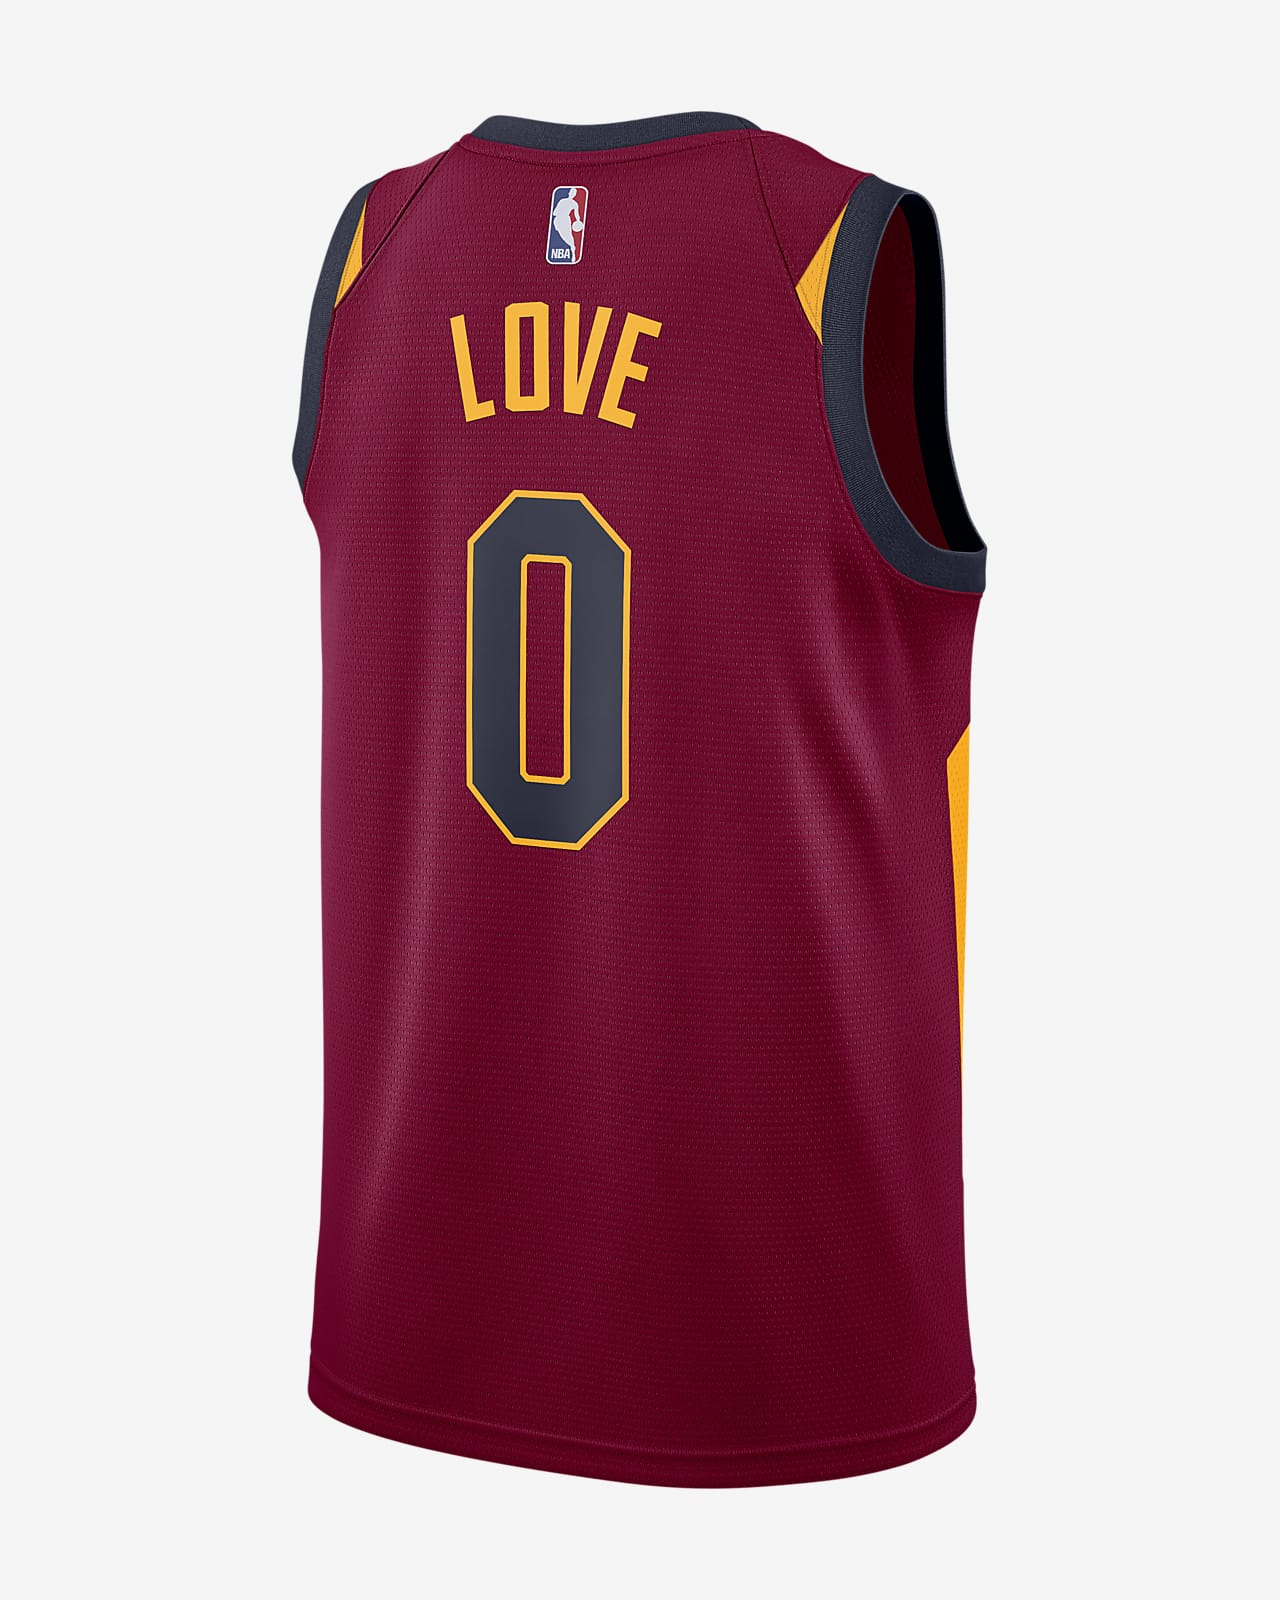 kevin love jersey